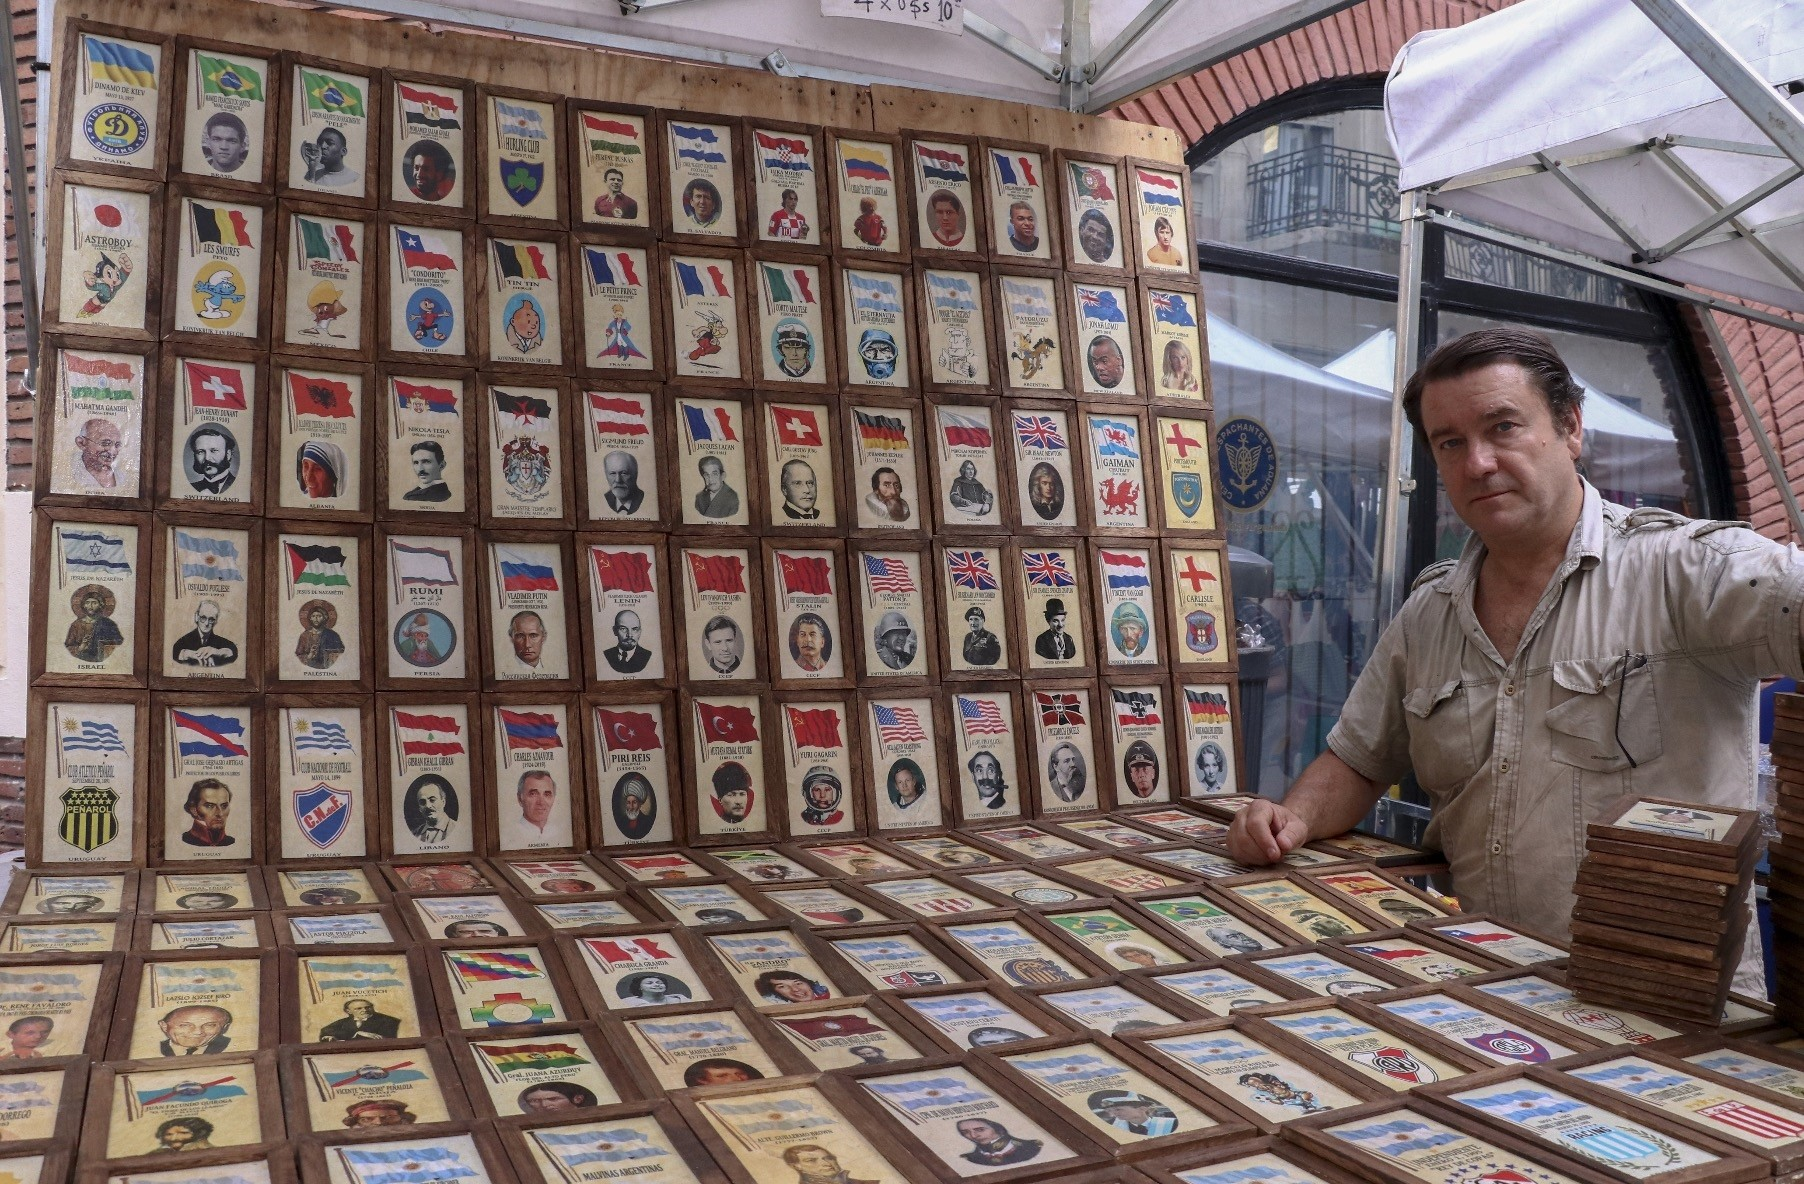 A seller beside his booth where he displays old photographs of influential people and various flags.